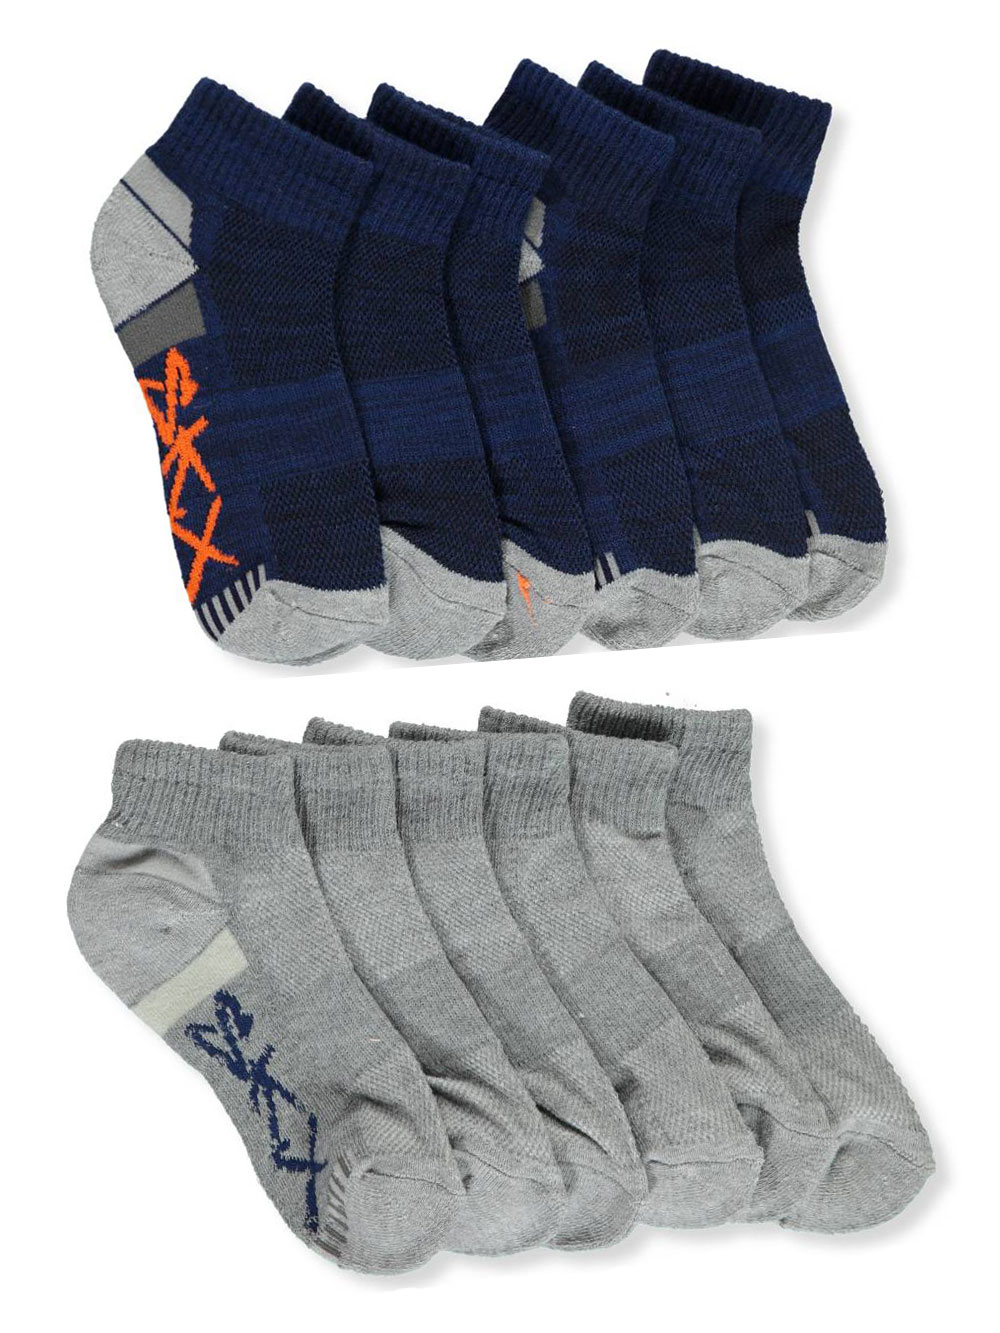 Toddler and Youth 6-Pack Low-Cut Socks